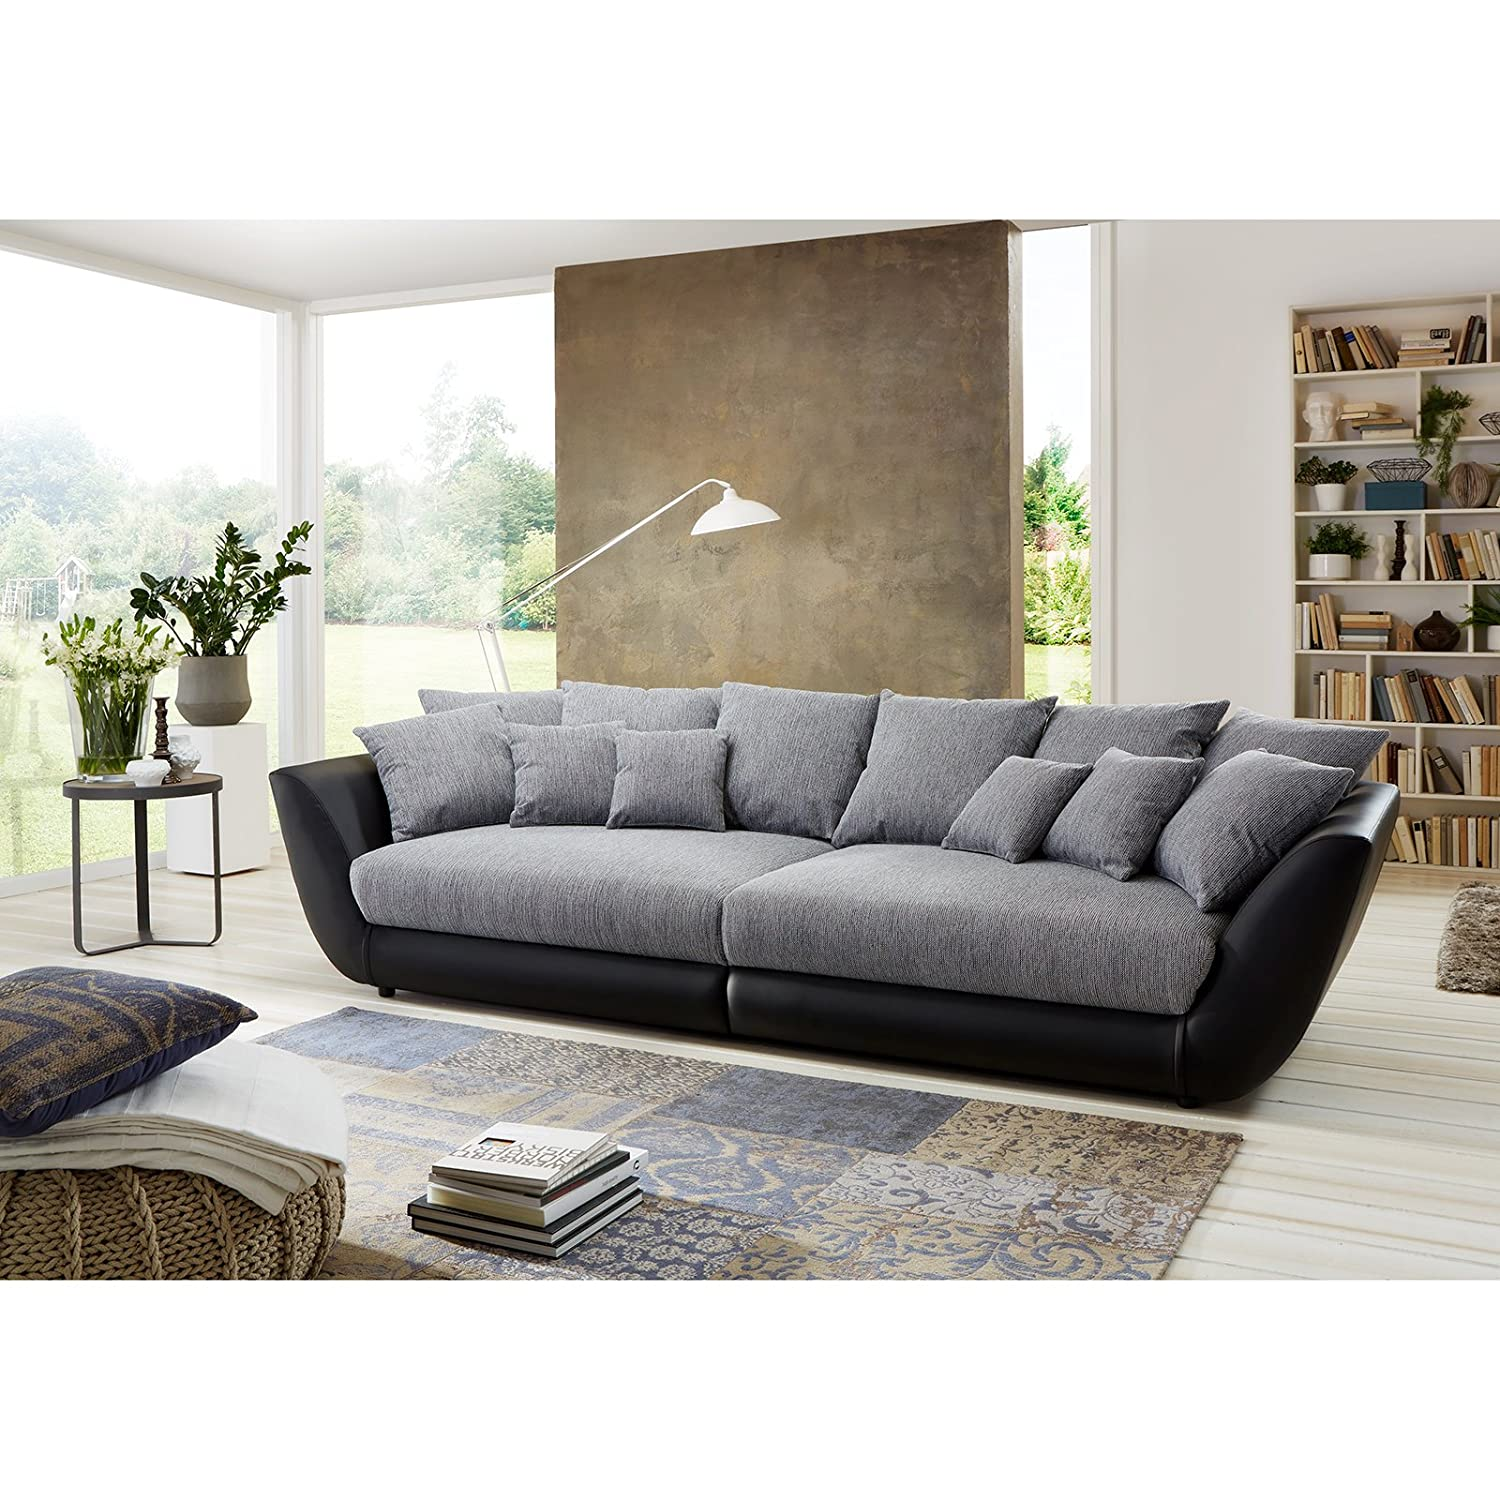 federkern couch top federkern couch with federkern couch. Black Bedroom Furniture Sets. Home Design Ideas